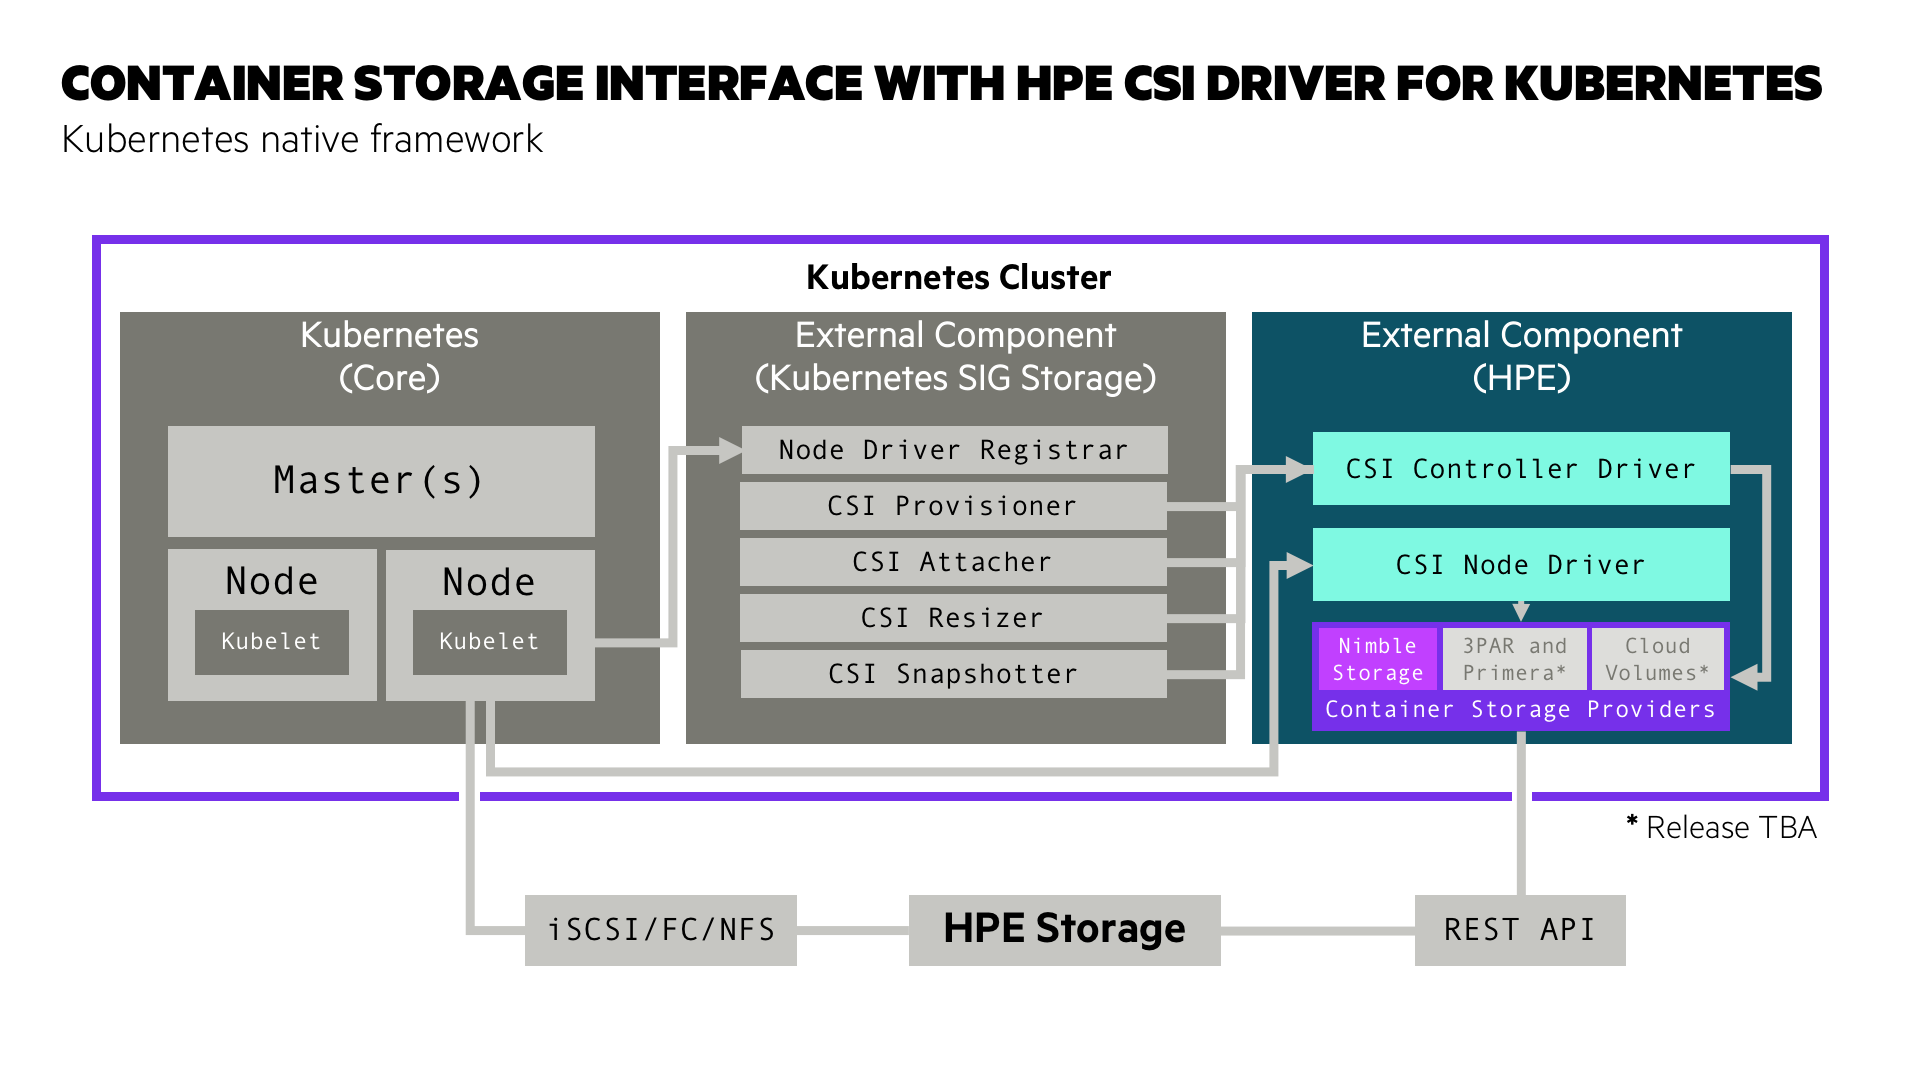 Container Storage Interface with HPE CSI Driver for Kubernetes